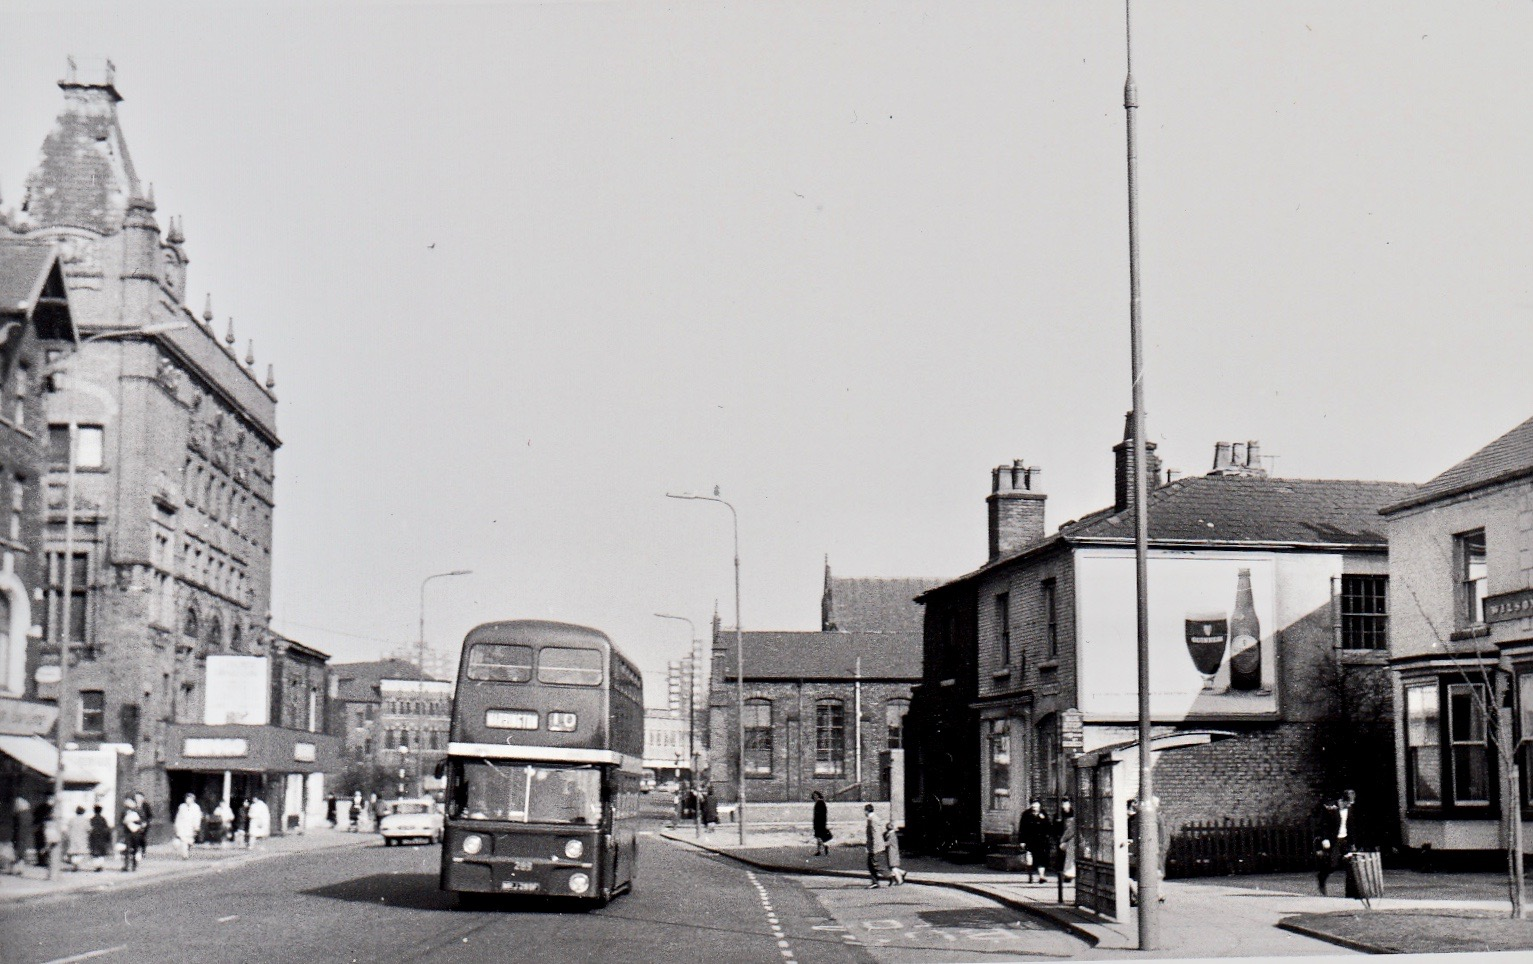 pic of bus no E289 at Eccles on 5th April 1969